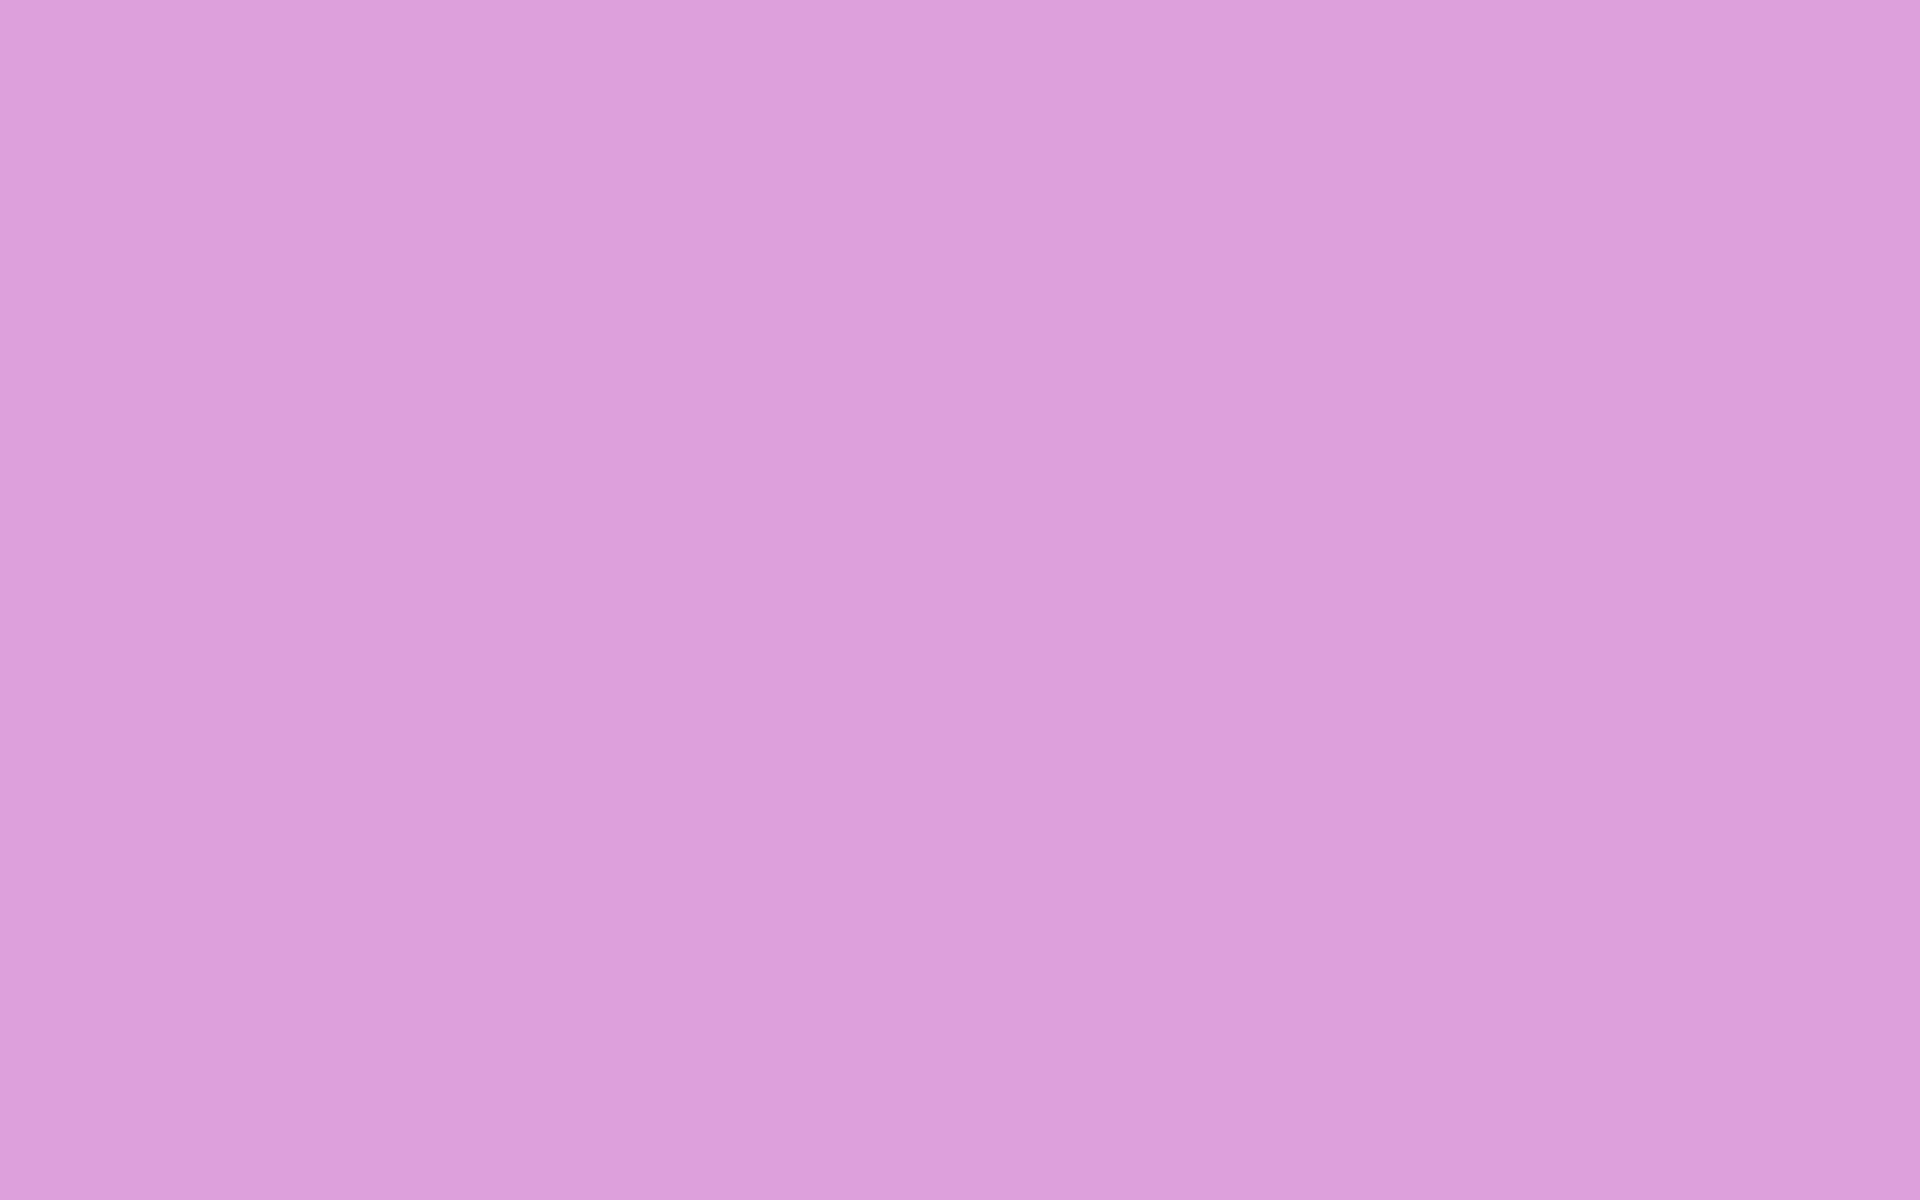 1920x1200 Pale Plum Solid Color Background